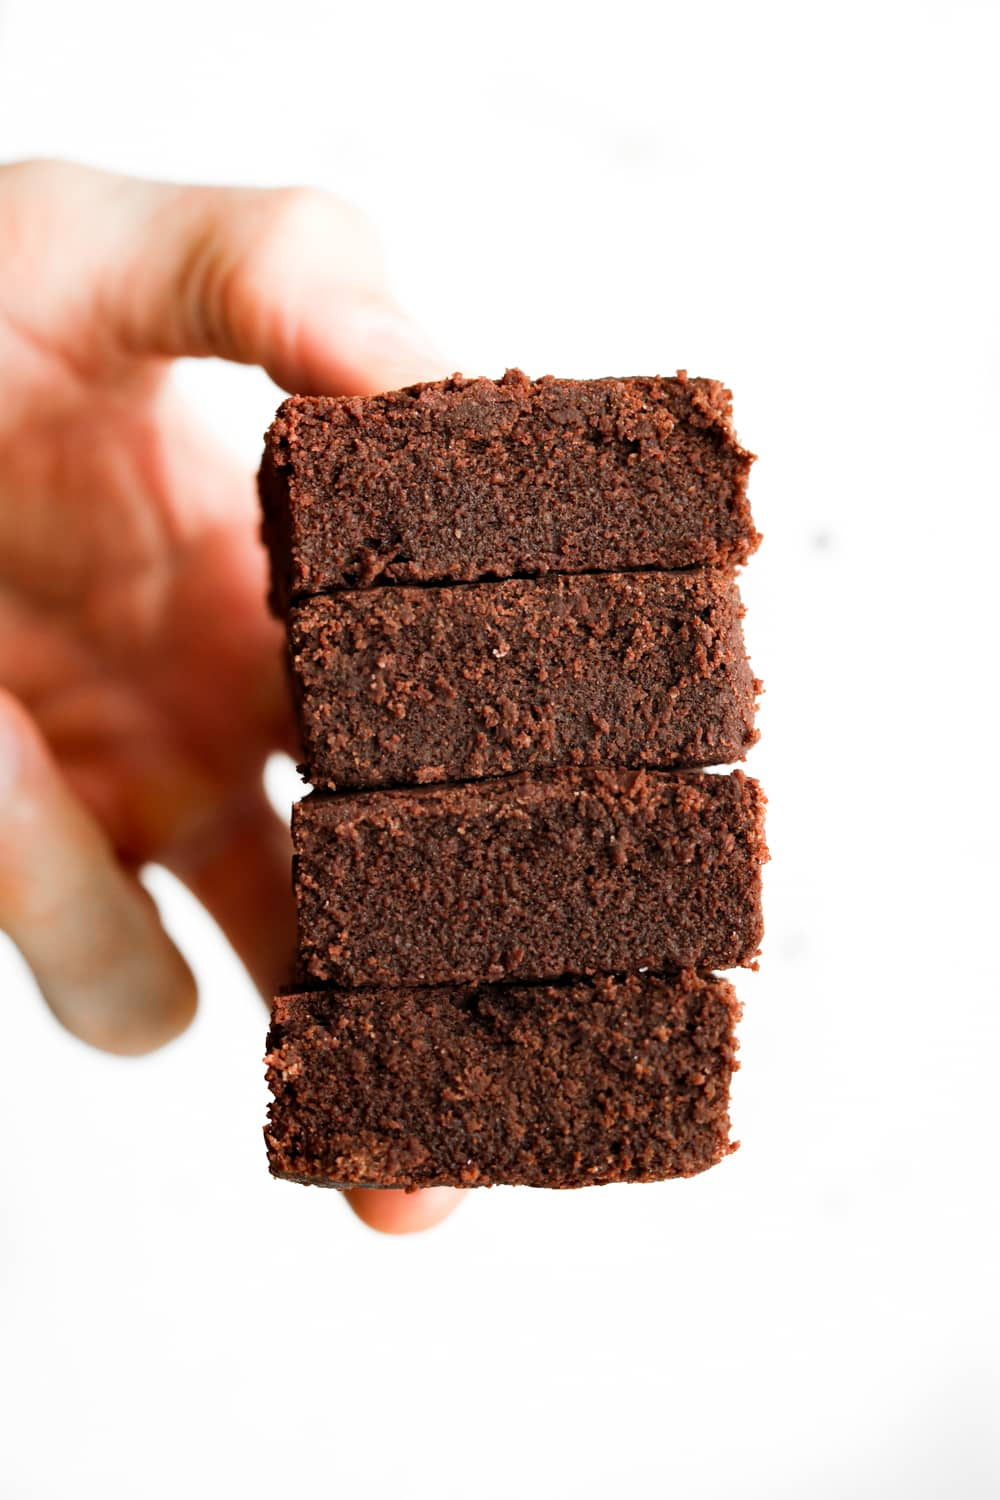 A hand holding fudgy coconut flour keto brownies